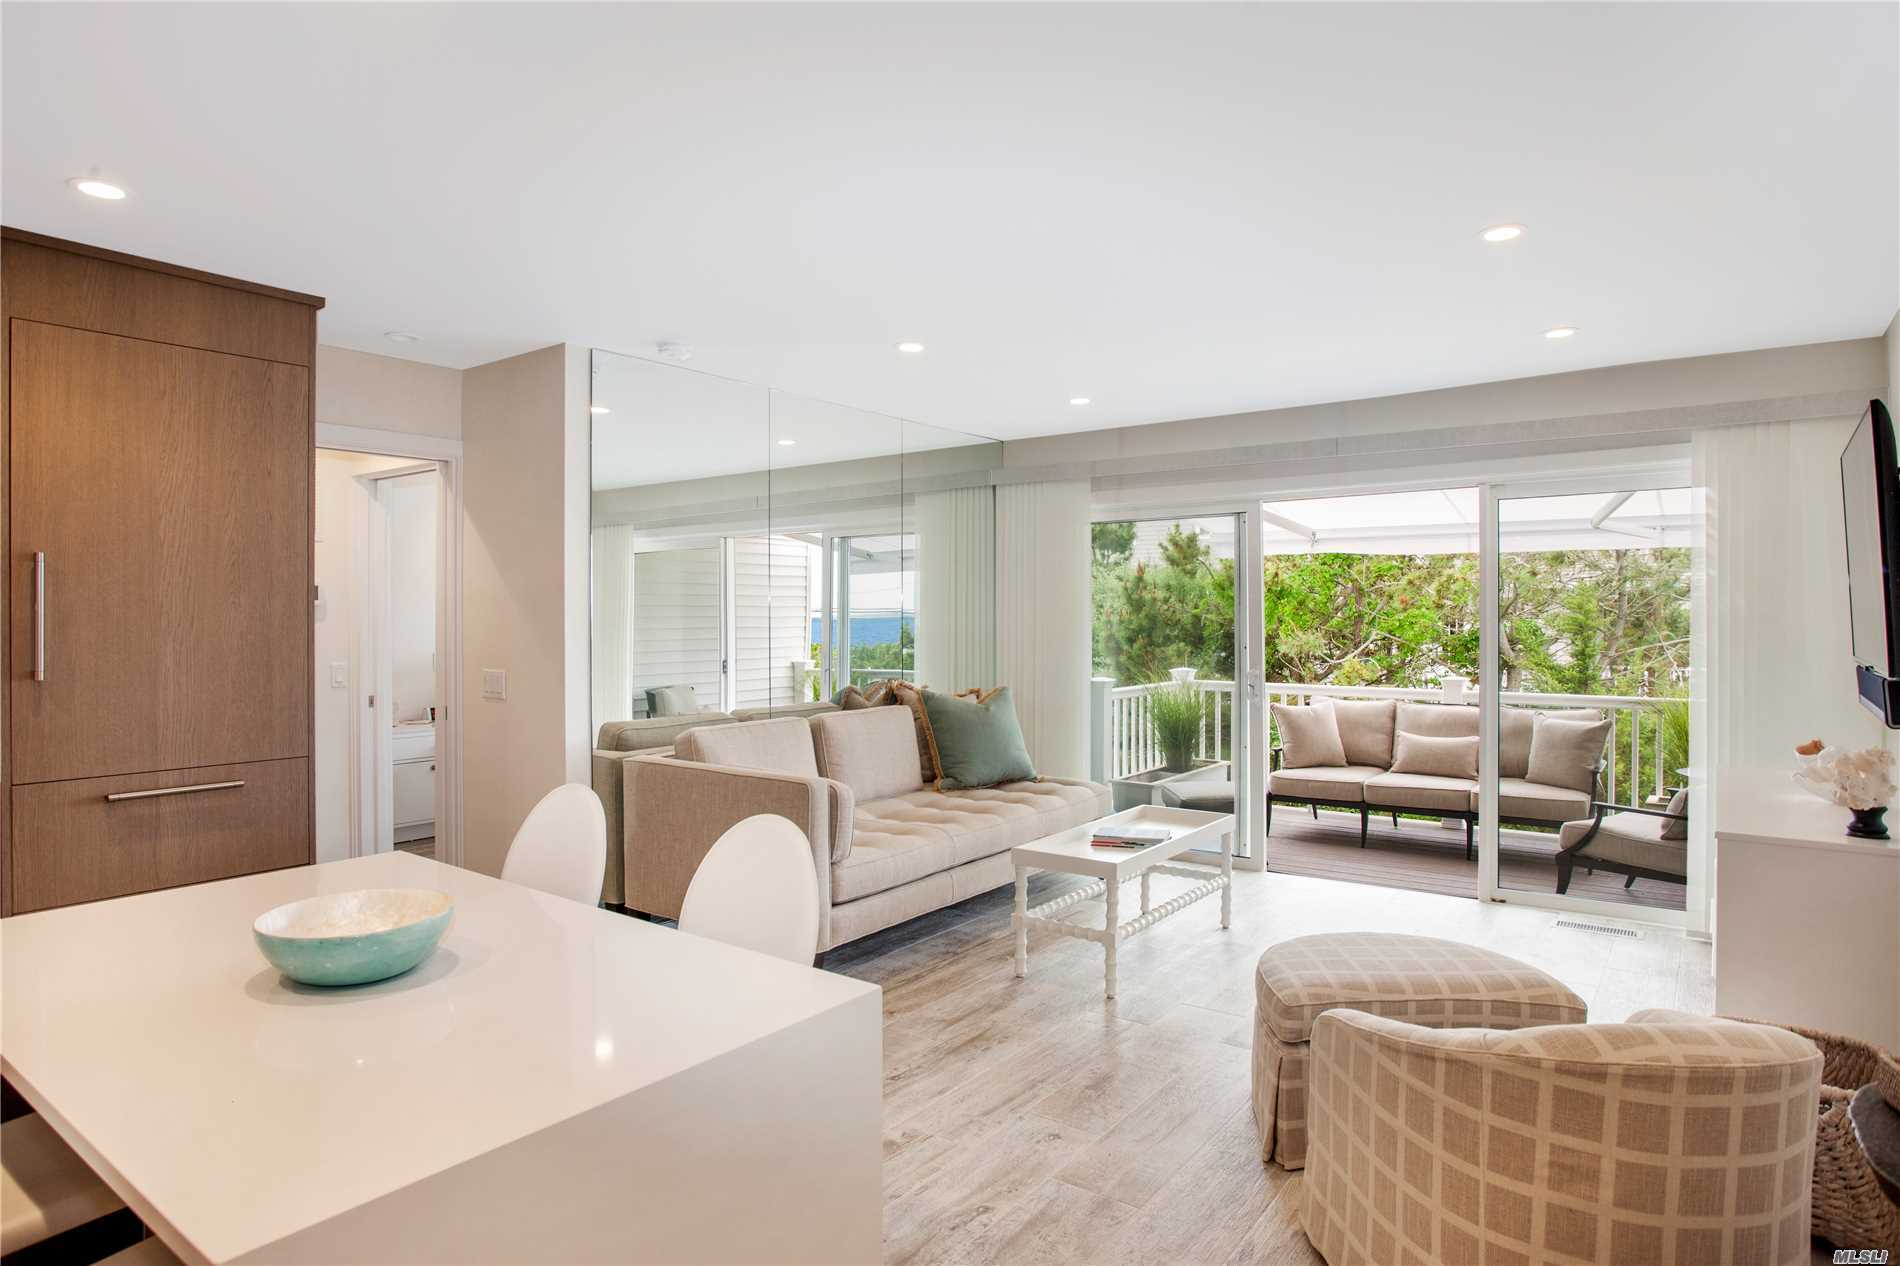 In Between The Multi- Million Dollar Homes On The Pristine Stretch Of Beaches On Dune Road, Is A Completely Renovated Super Chic 1 Bedroom W/Waterviews In The Sought After, La Coquille. Enjoy Concierge Services,  Heated Ocean Front Pool, Beach And Bayside Sunsets. All Within A Short Distance Into Town! The Easy Breezy, No Traffic Part Of The Hamptons! ***Renovated Form The Studs, Custom Cabinetry, Roll Out Awning On The Private Deck And More. Must See Before It's Sold!***